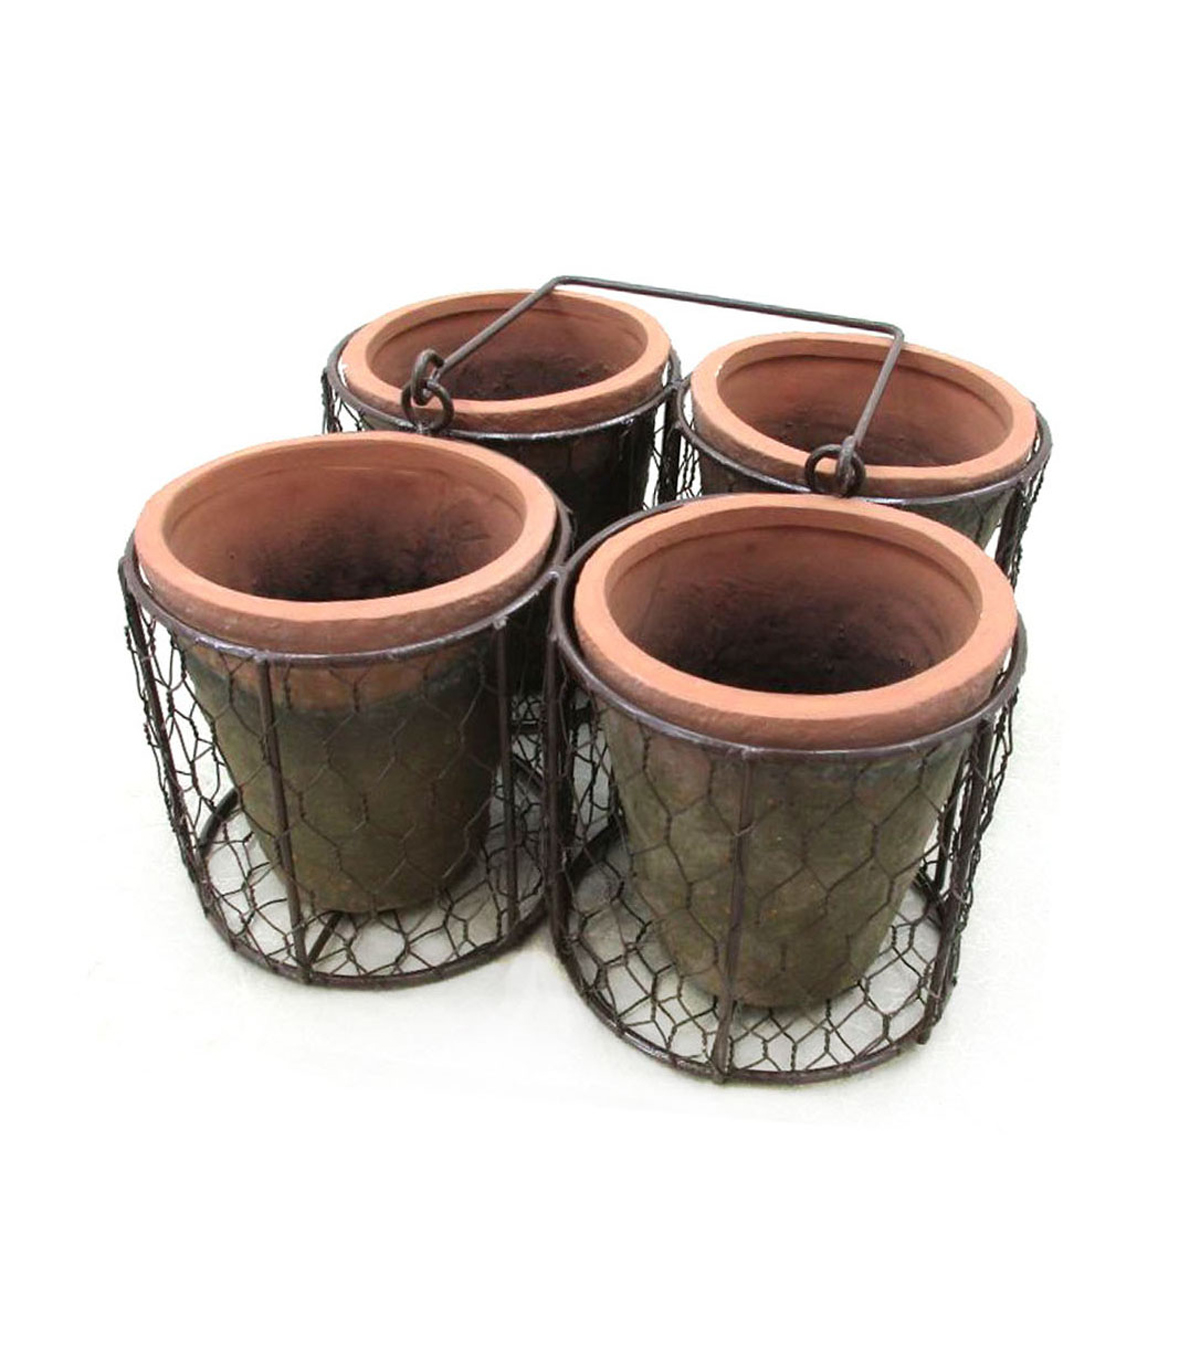 Bloom Room 4 Terracotta Pots In Tray With Handle